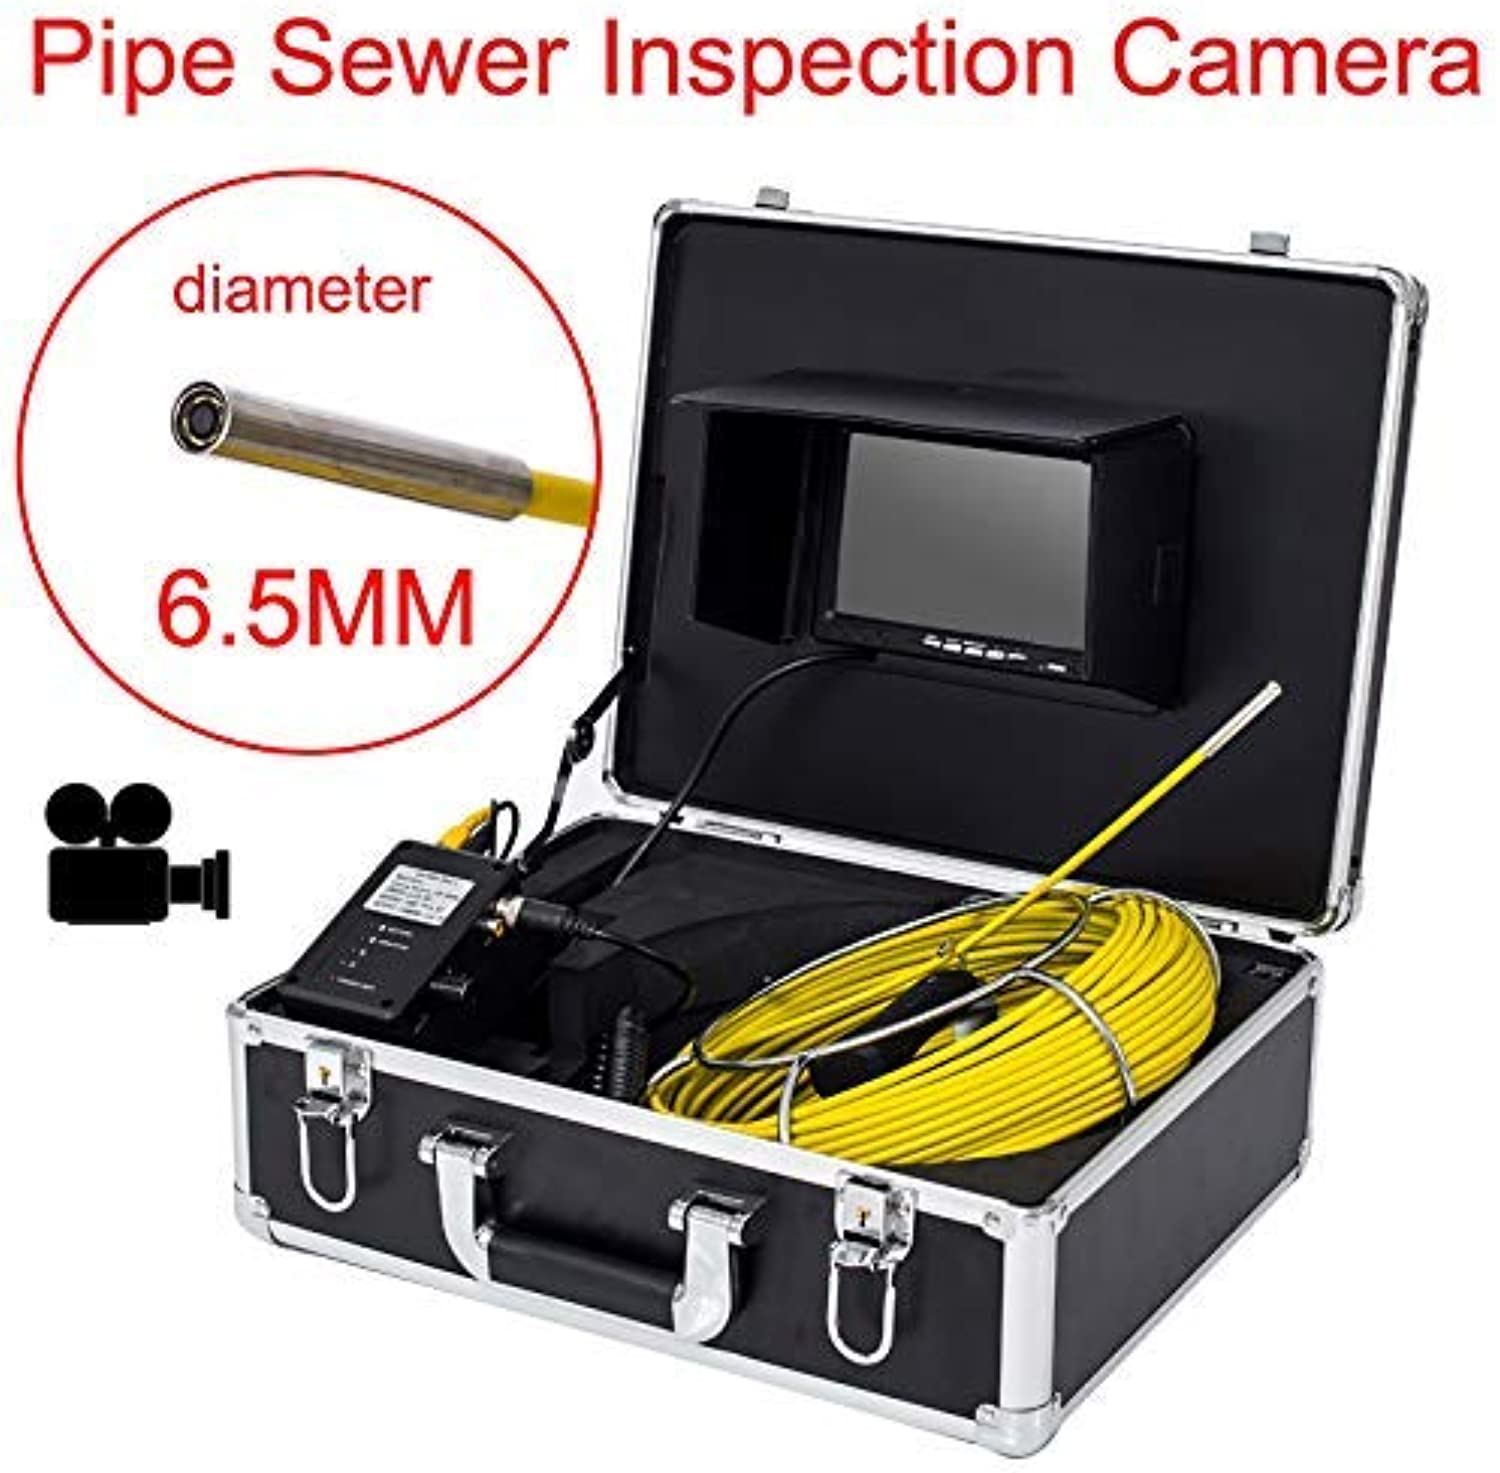 7 inch 6.5mm Industrial Pipeline Sewer Detection Camera IP68 Waterproof Drainage Detection 1000 TVL Camera DVR Function (20M)